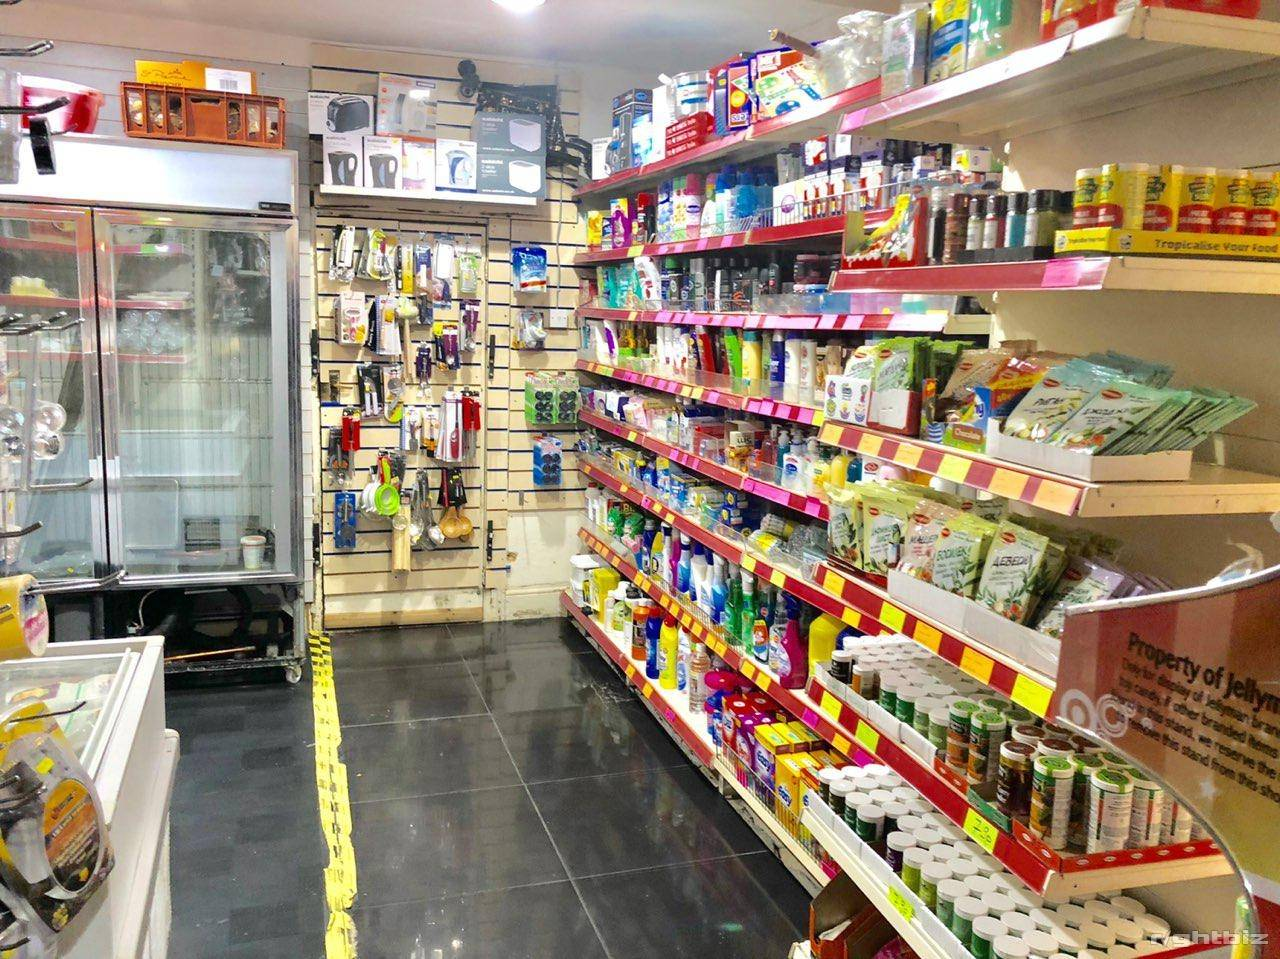 Off License & Grocery for Sale in Goodmayes Ilford IG3 9UN - Image 5